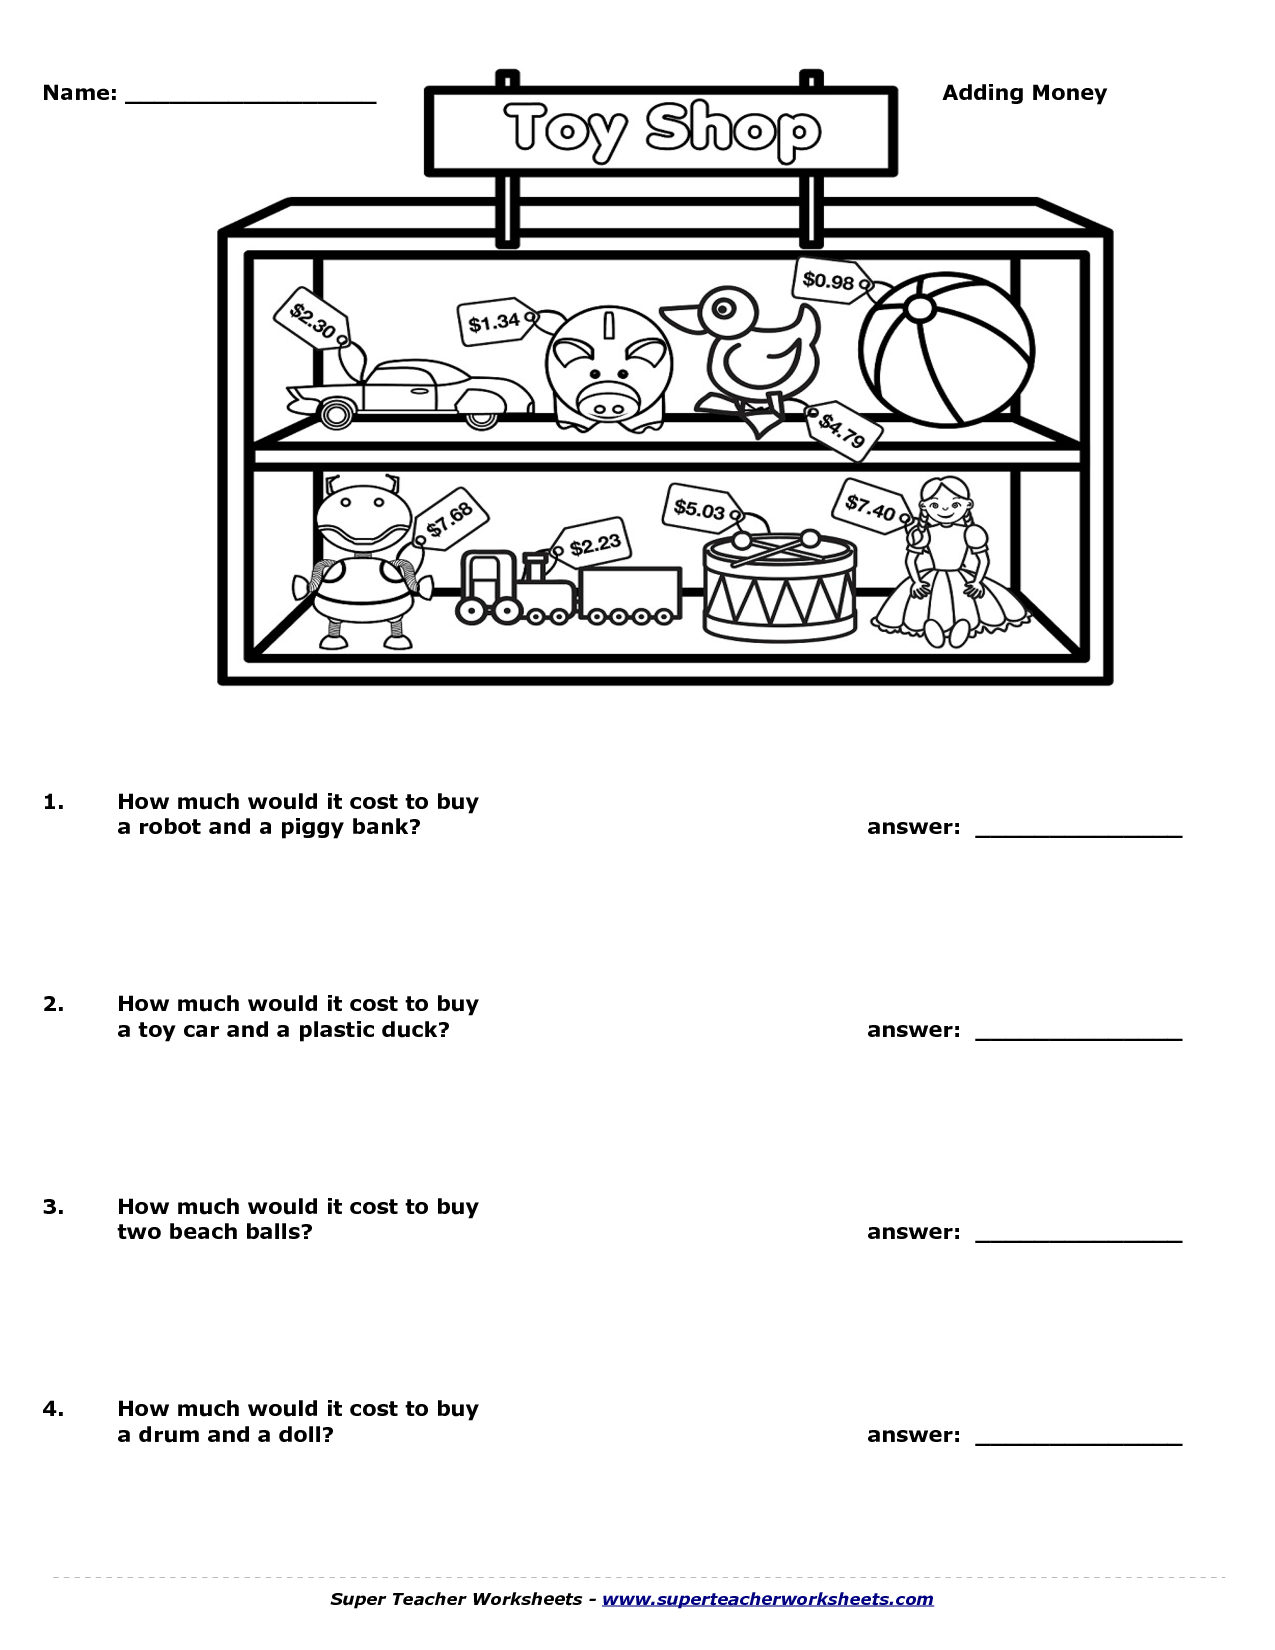 12 Best Images Of Super Teacher Worksheets And Answer Keys